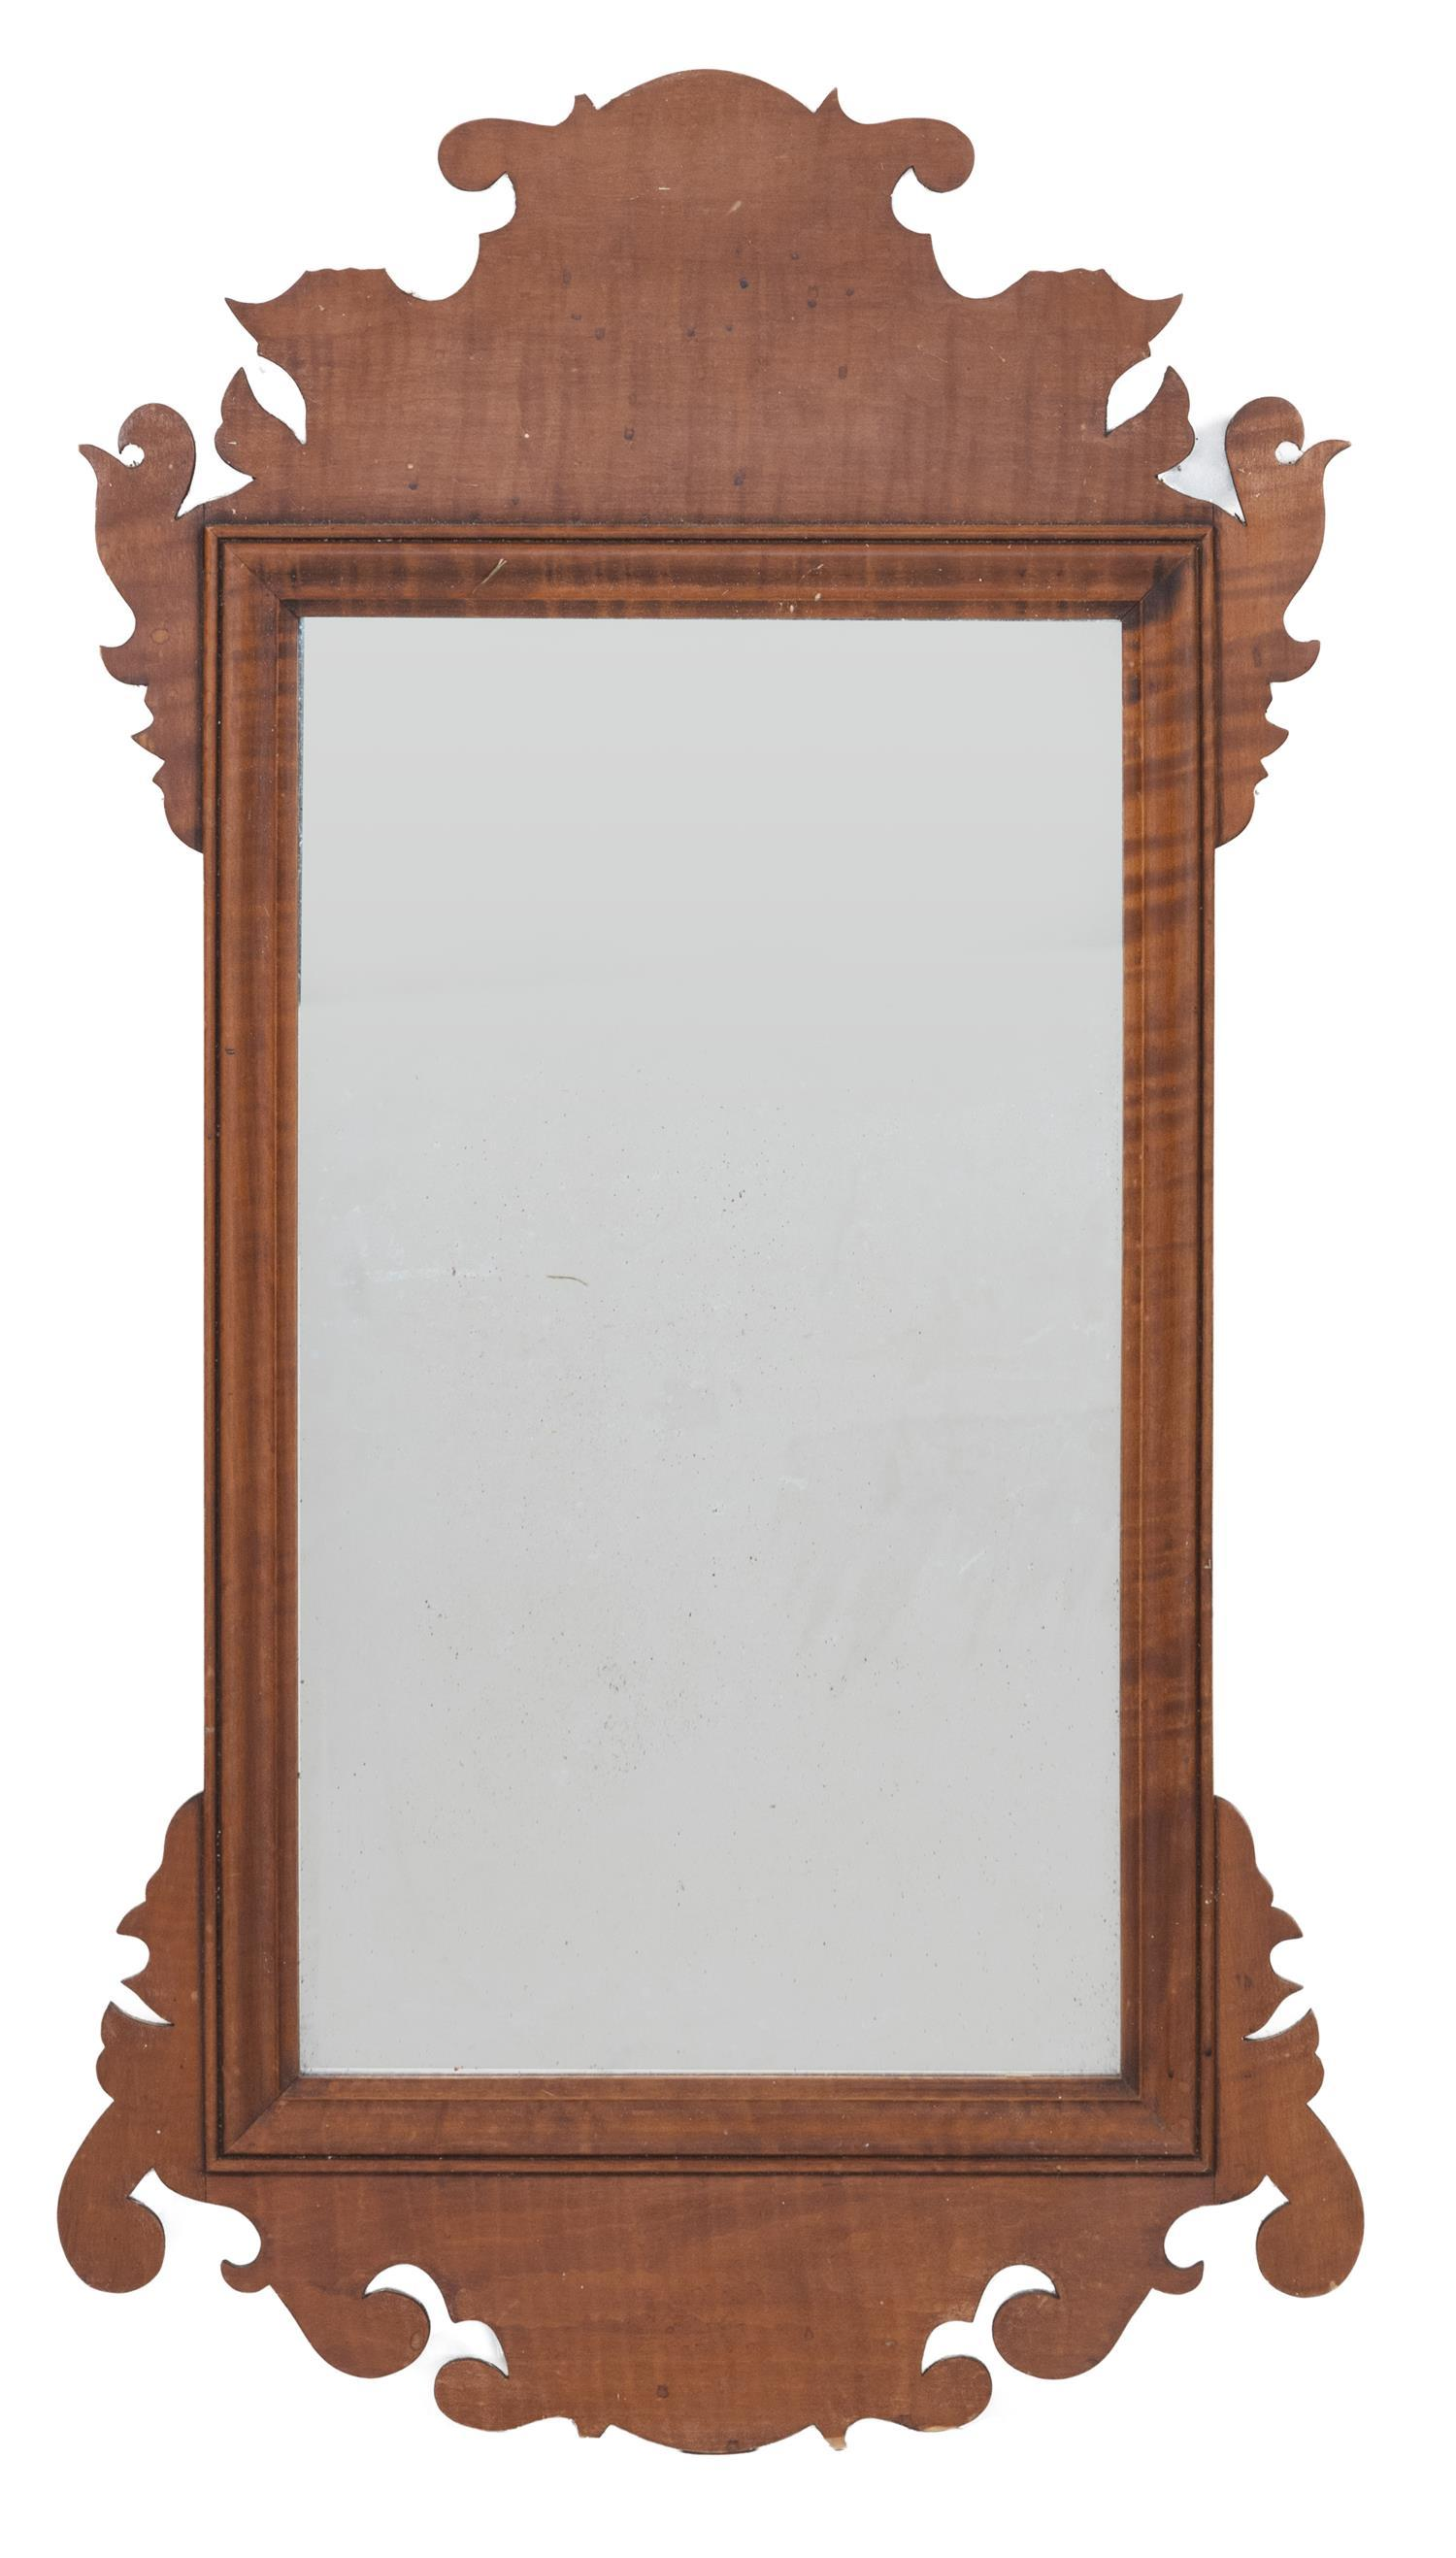 """ELDRED WHEELER CHIPPENDALE-STYLE MIRROR In tiger maple. Original label on back. Height 37.5"""". Width 20""""."""